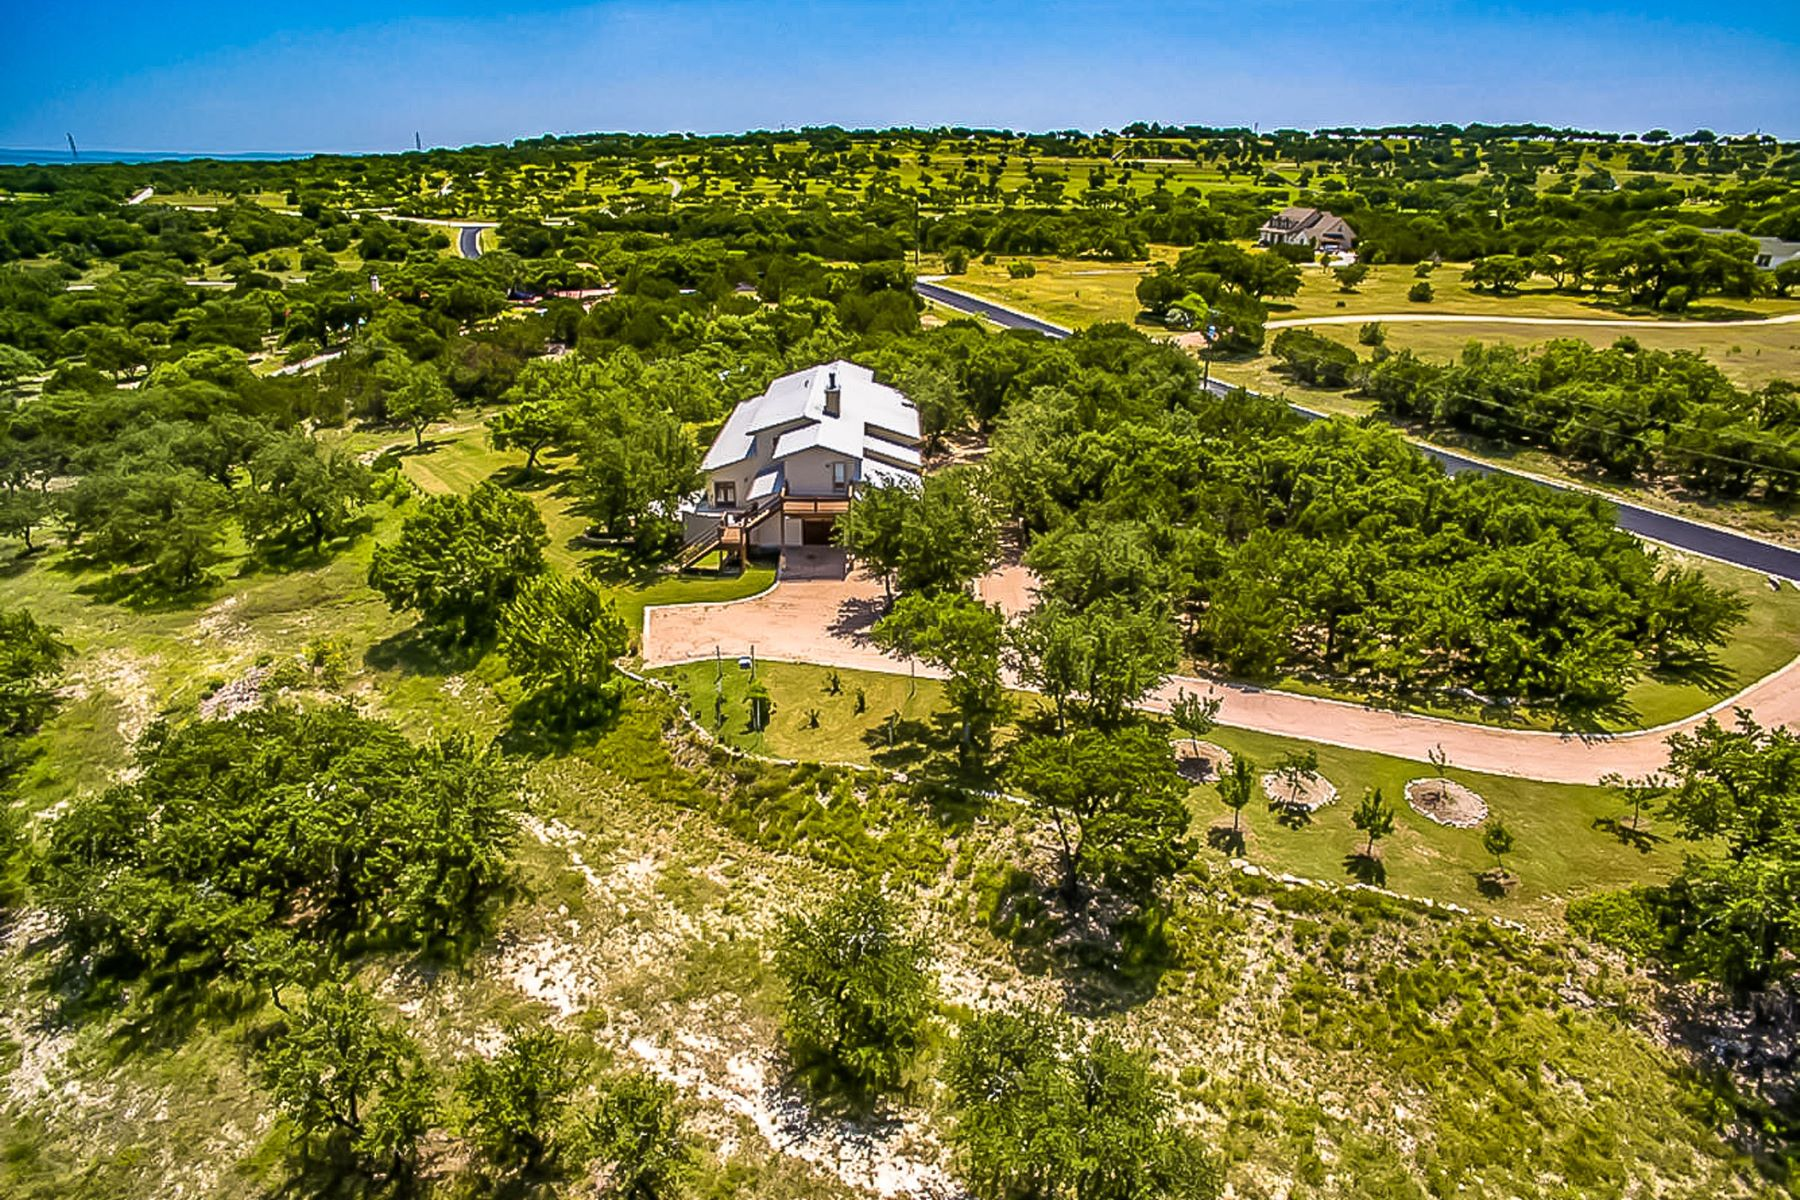 Farm / Ranch / Plantation for Sale at Panoramic Views of the Hill Country 140 Granite Ridge Dr Spicewood, Texas, 78669 United States